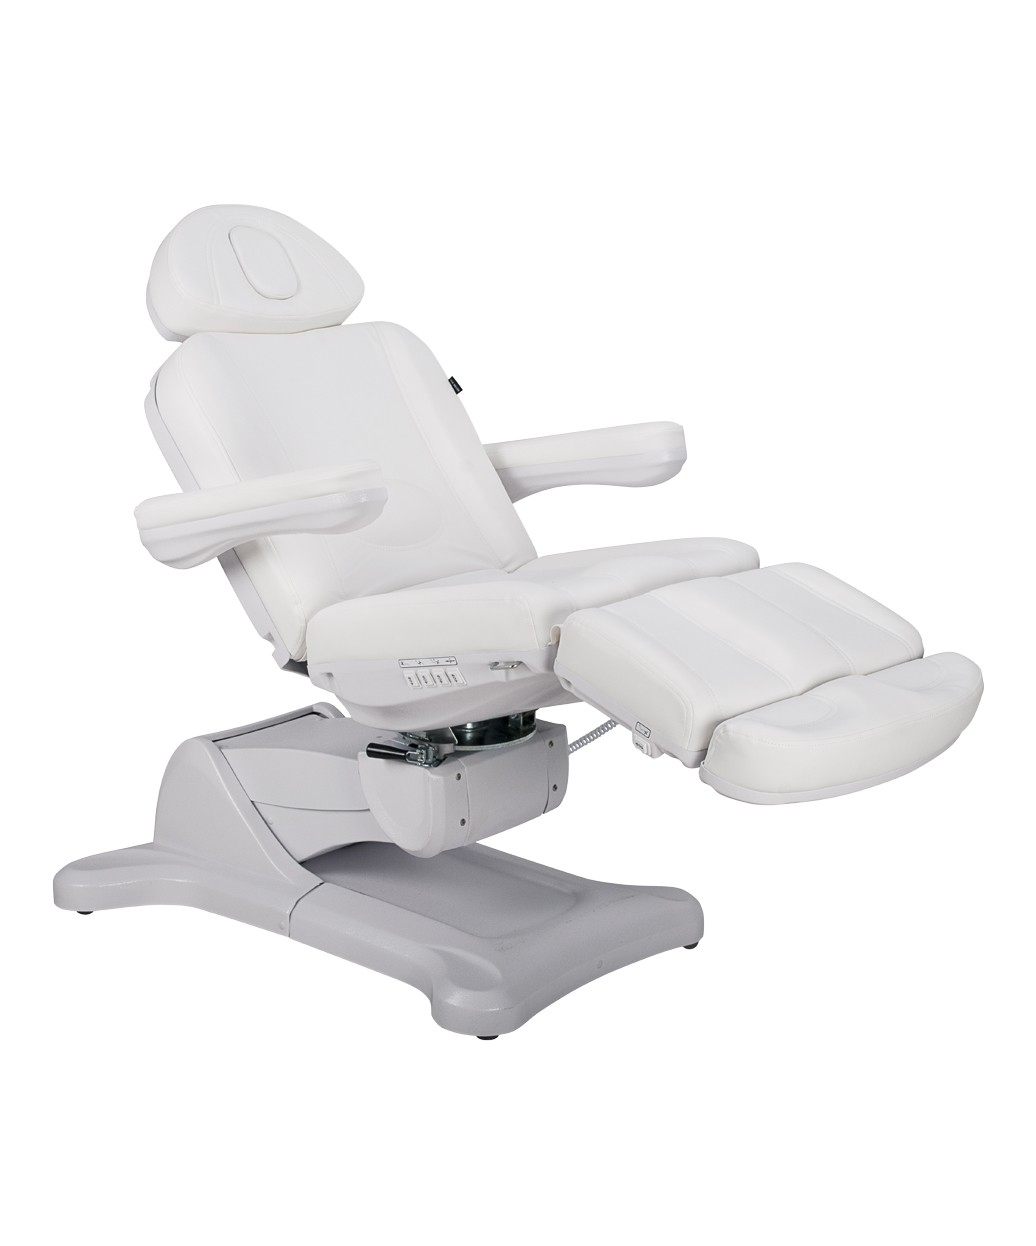 Radi+ 2246B Electric Multi Purpose Facial & Massage Bed